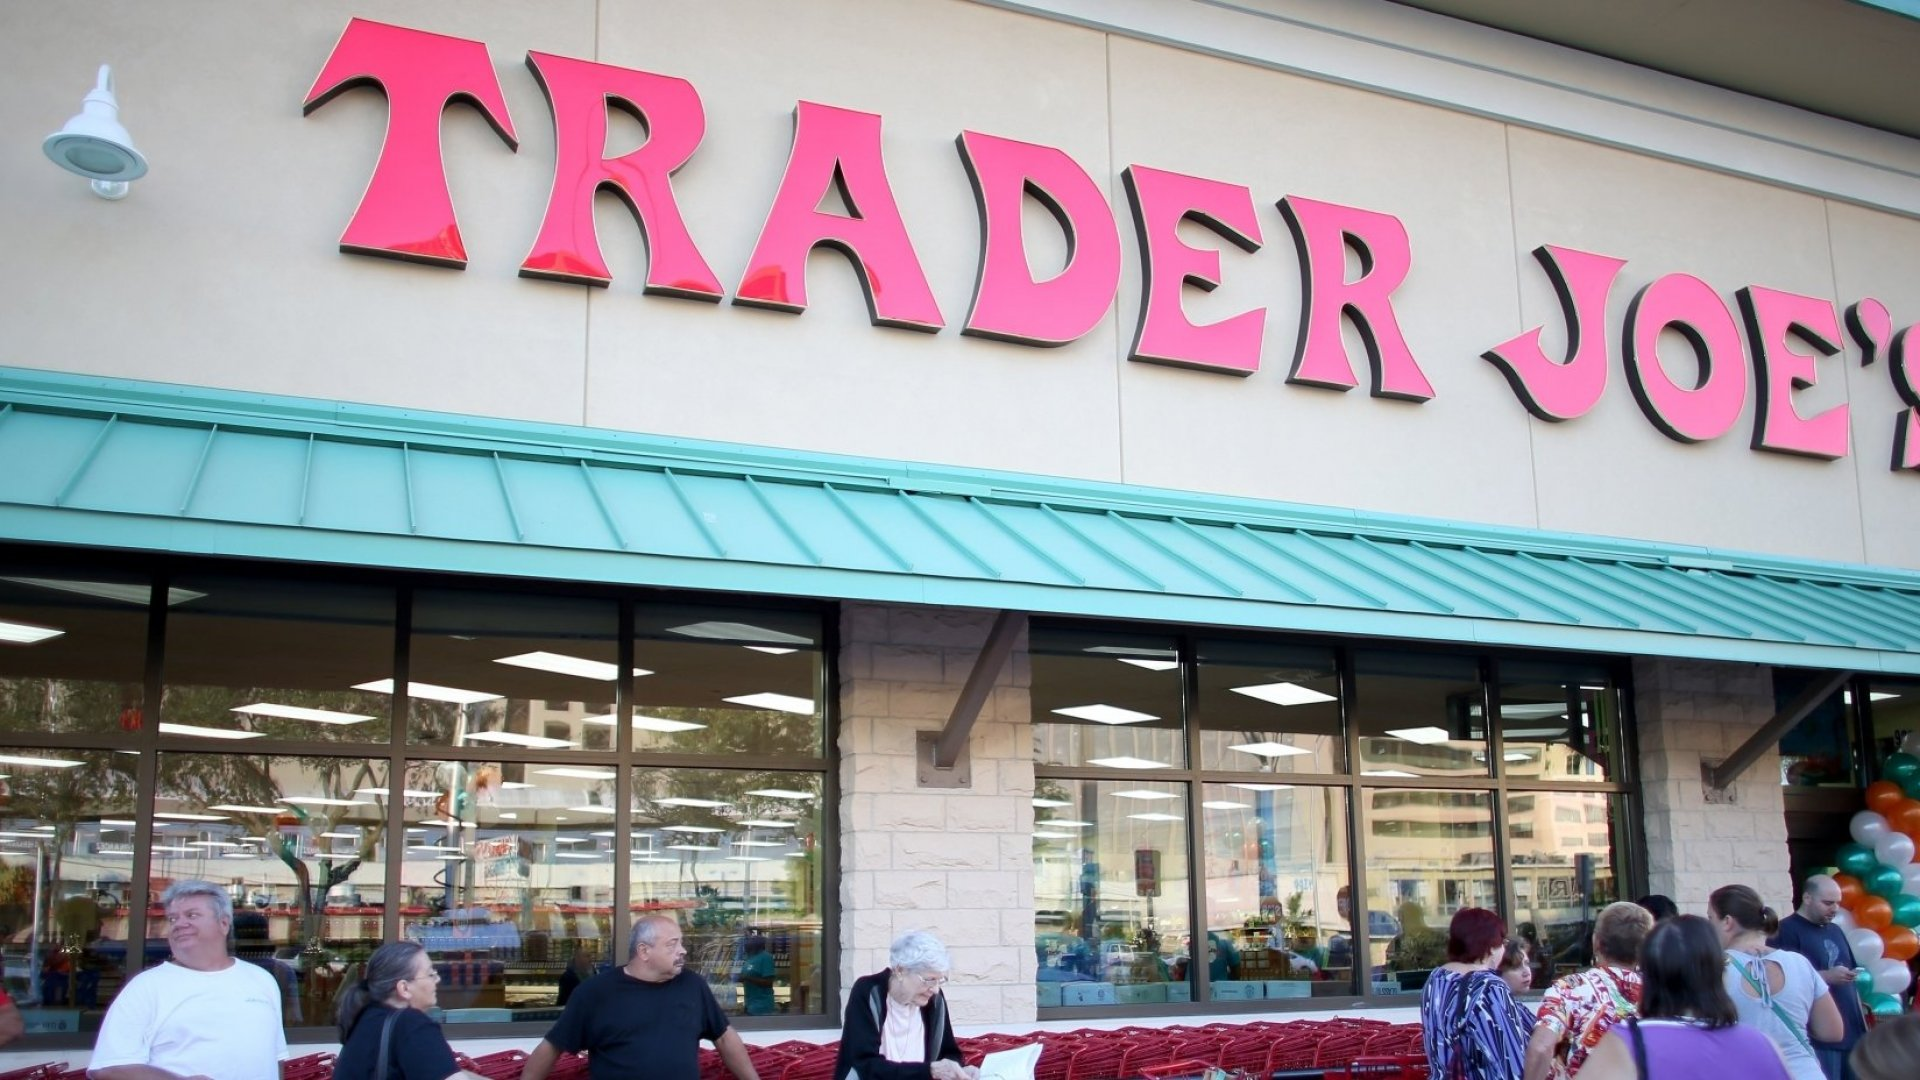 Trader Joe's Founder Joe Coulombe Dies at 89. He Spotted Trends in 1967 and Built a Beloved Brand